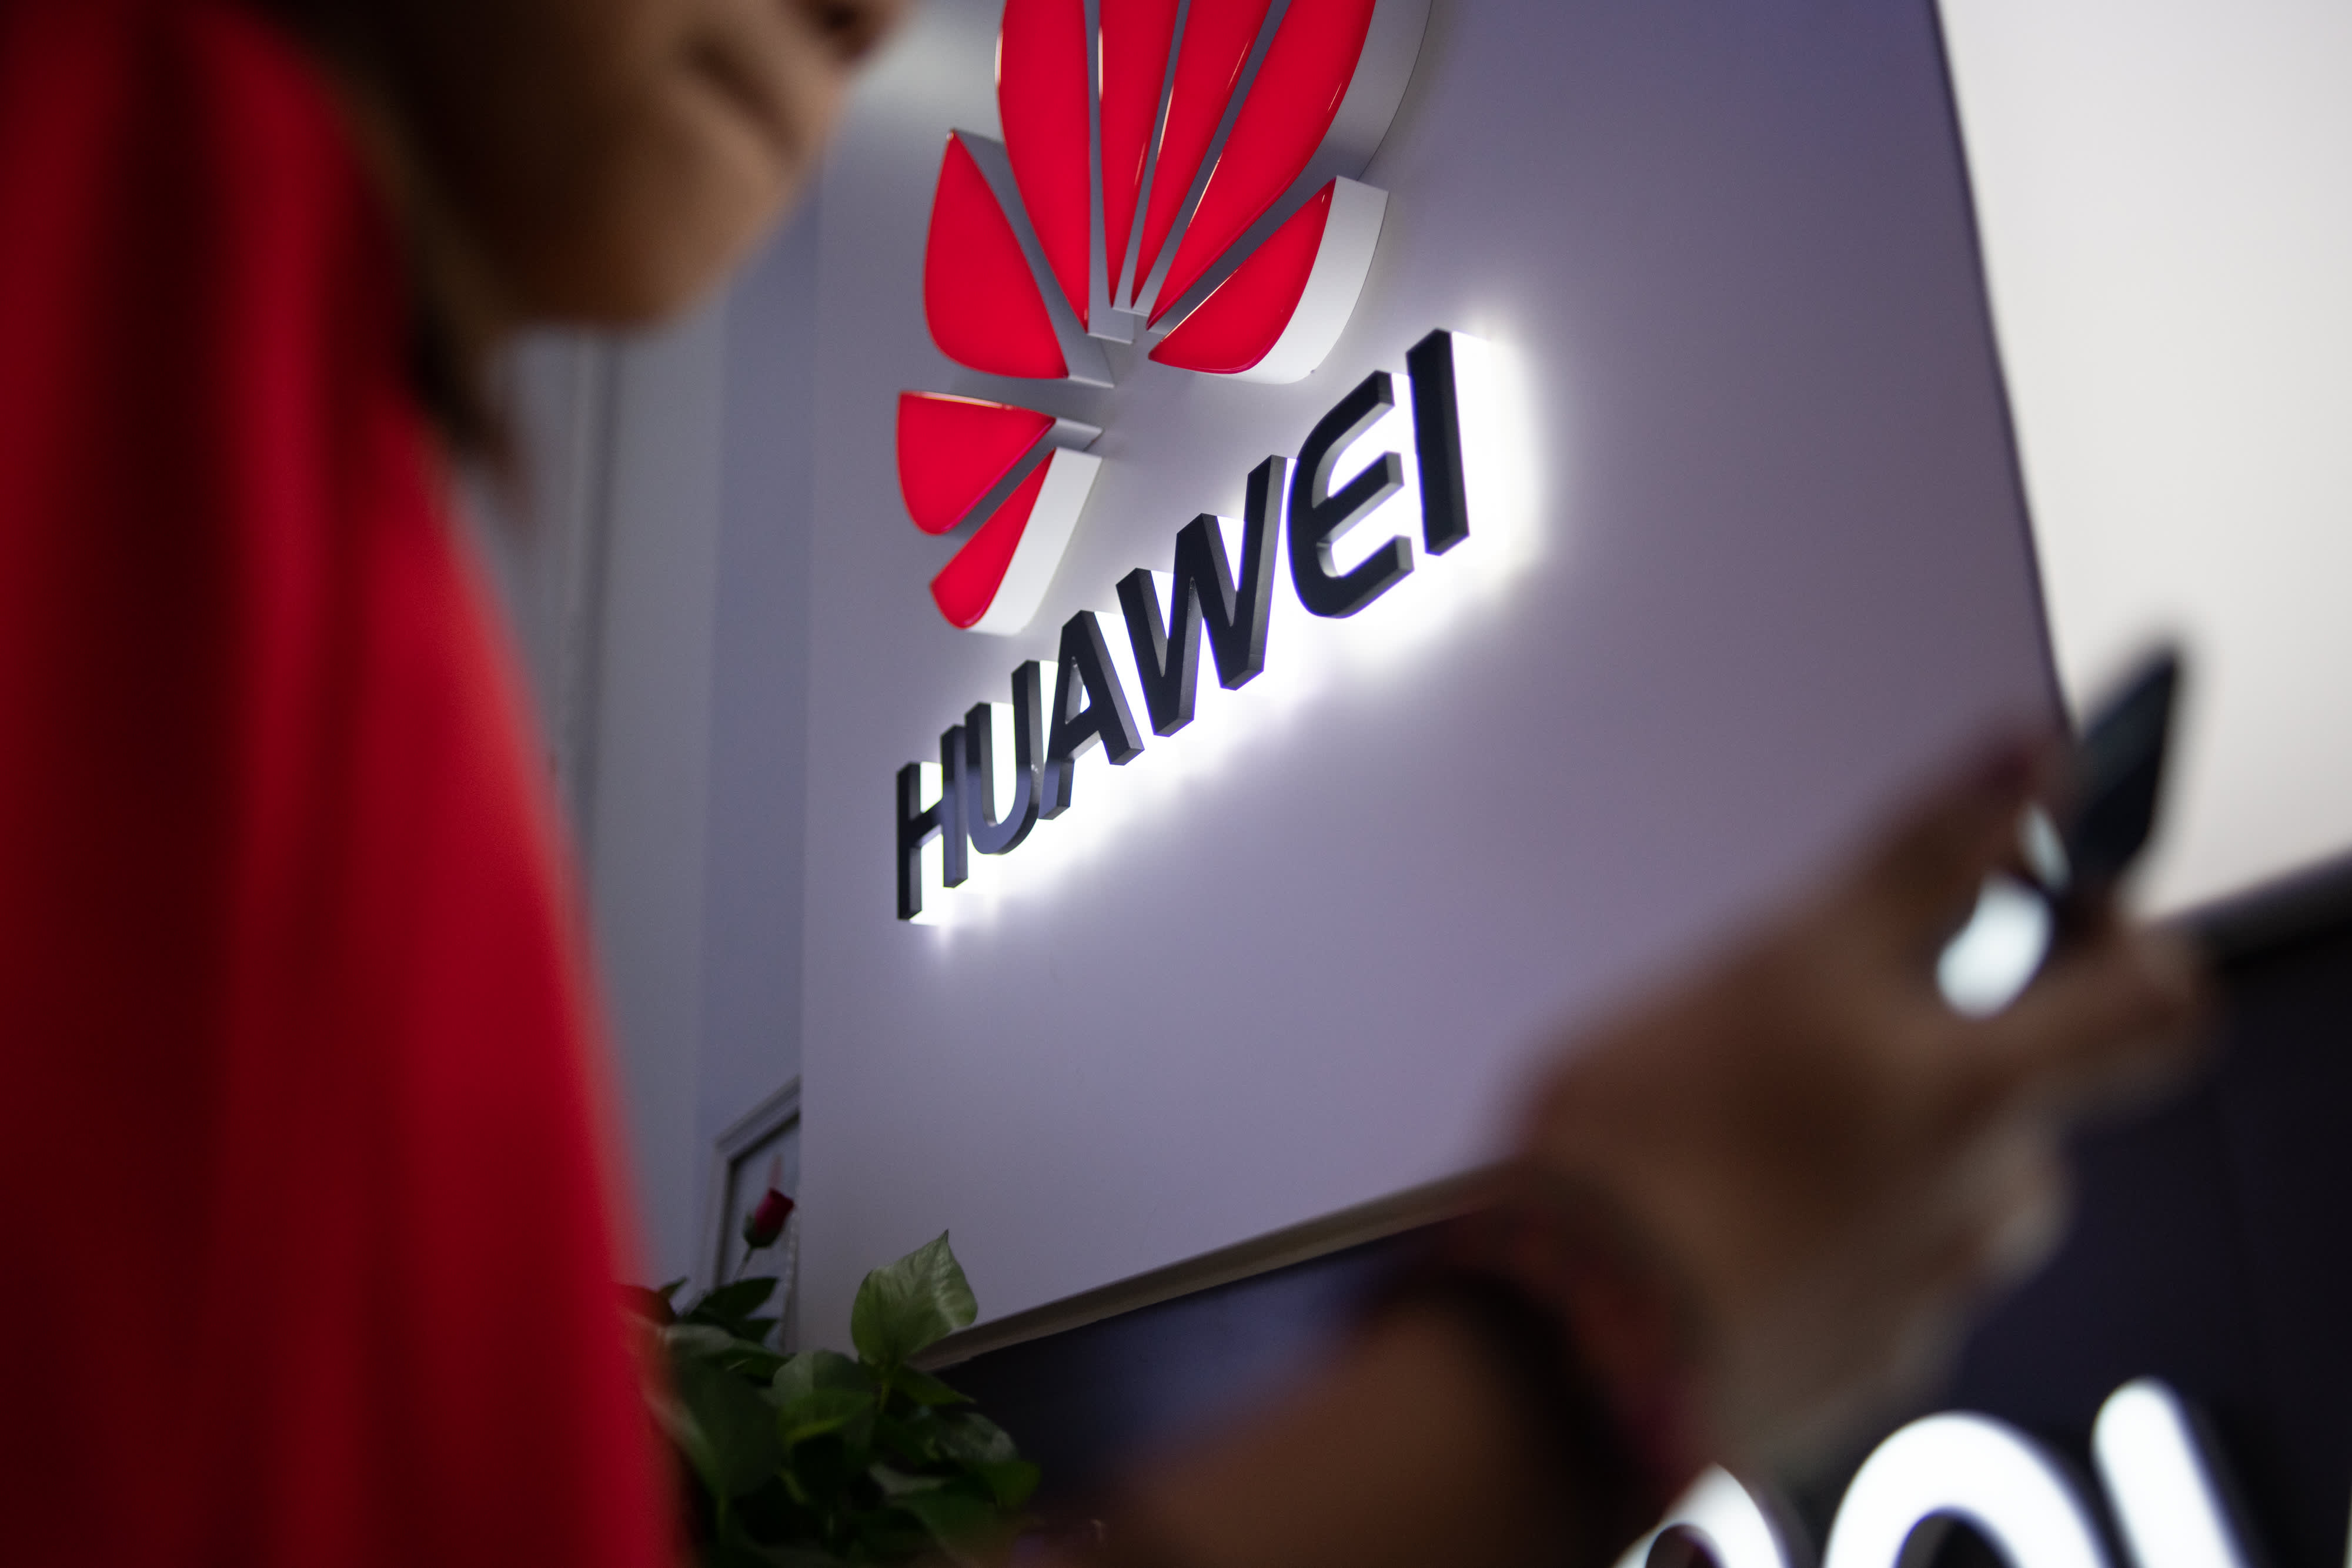 Huawei may demand more royalties from US firms that rely on its patented tech